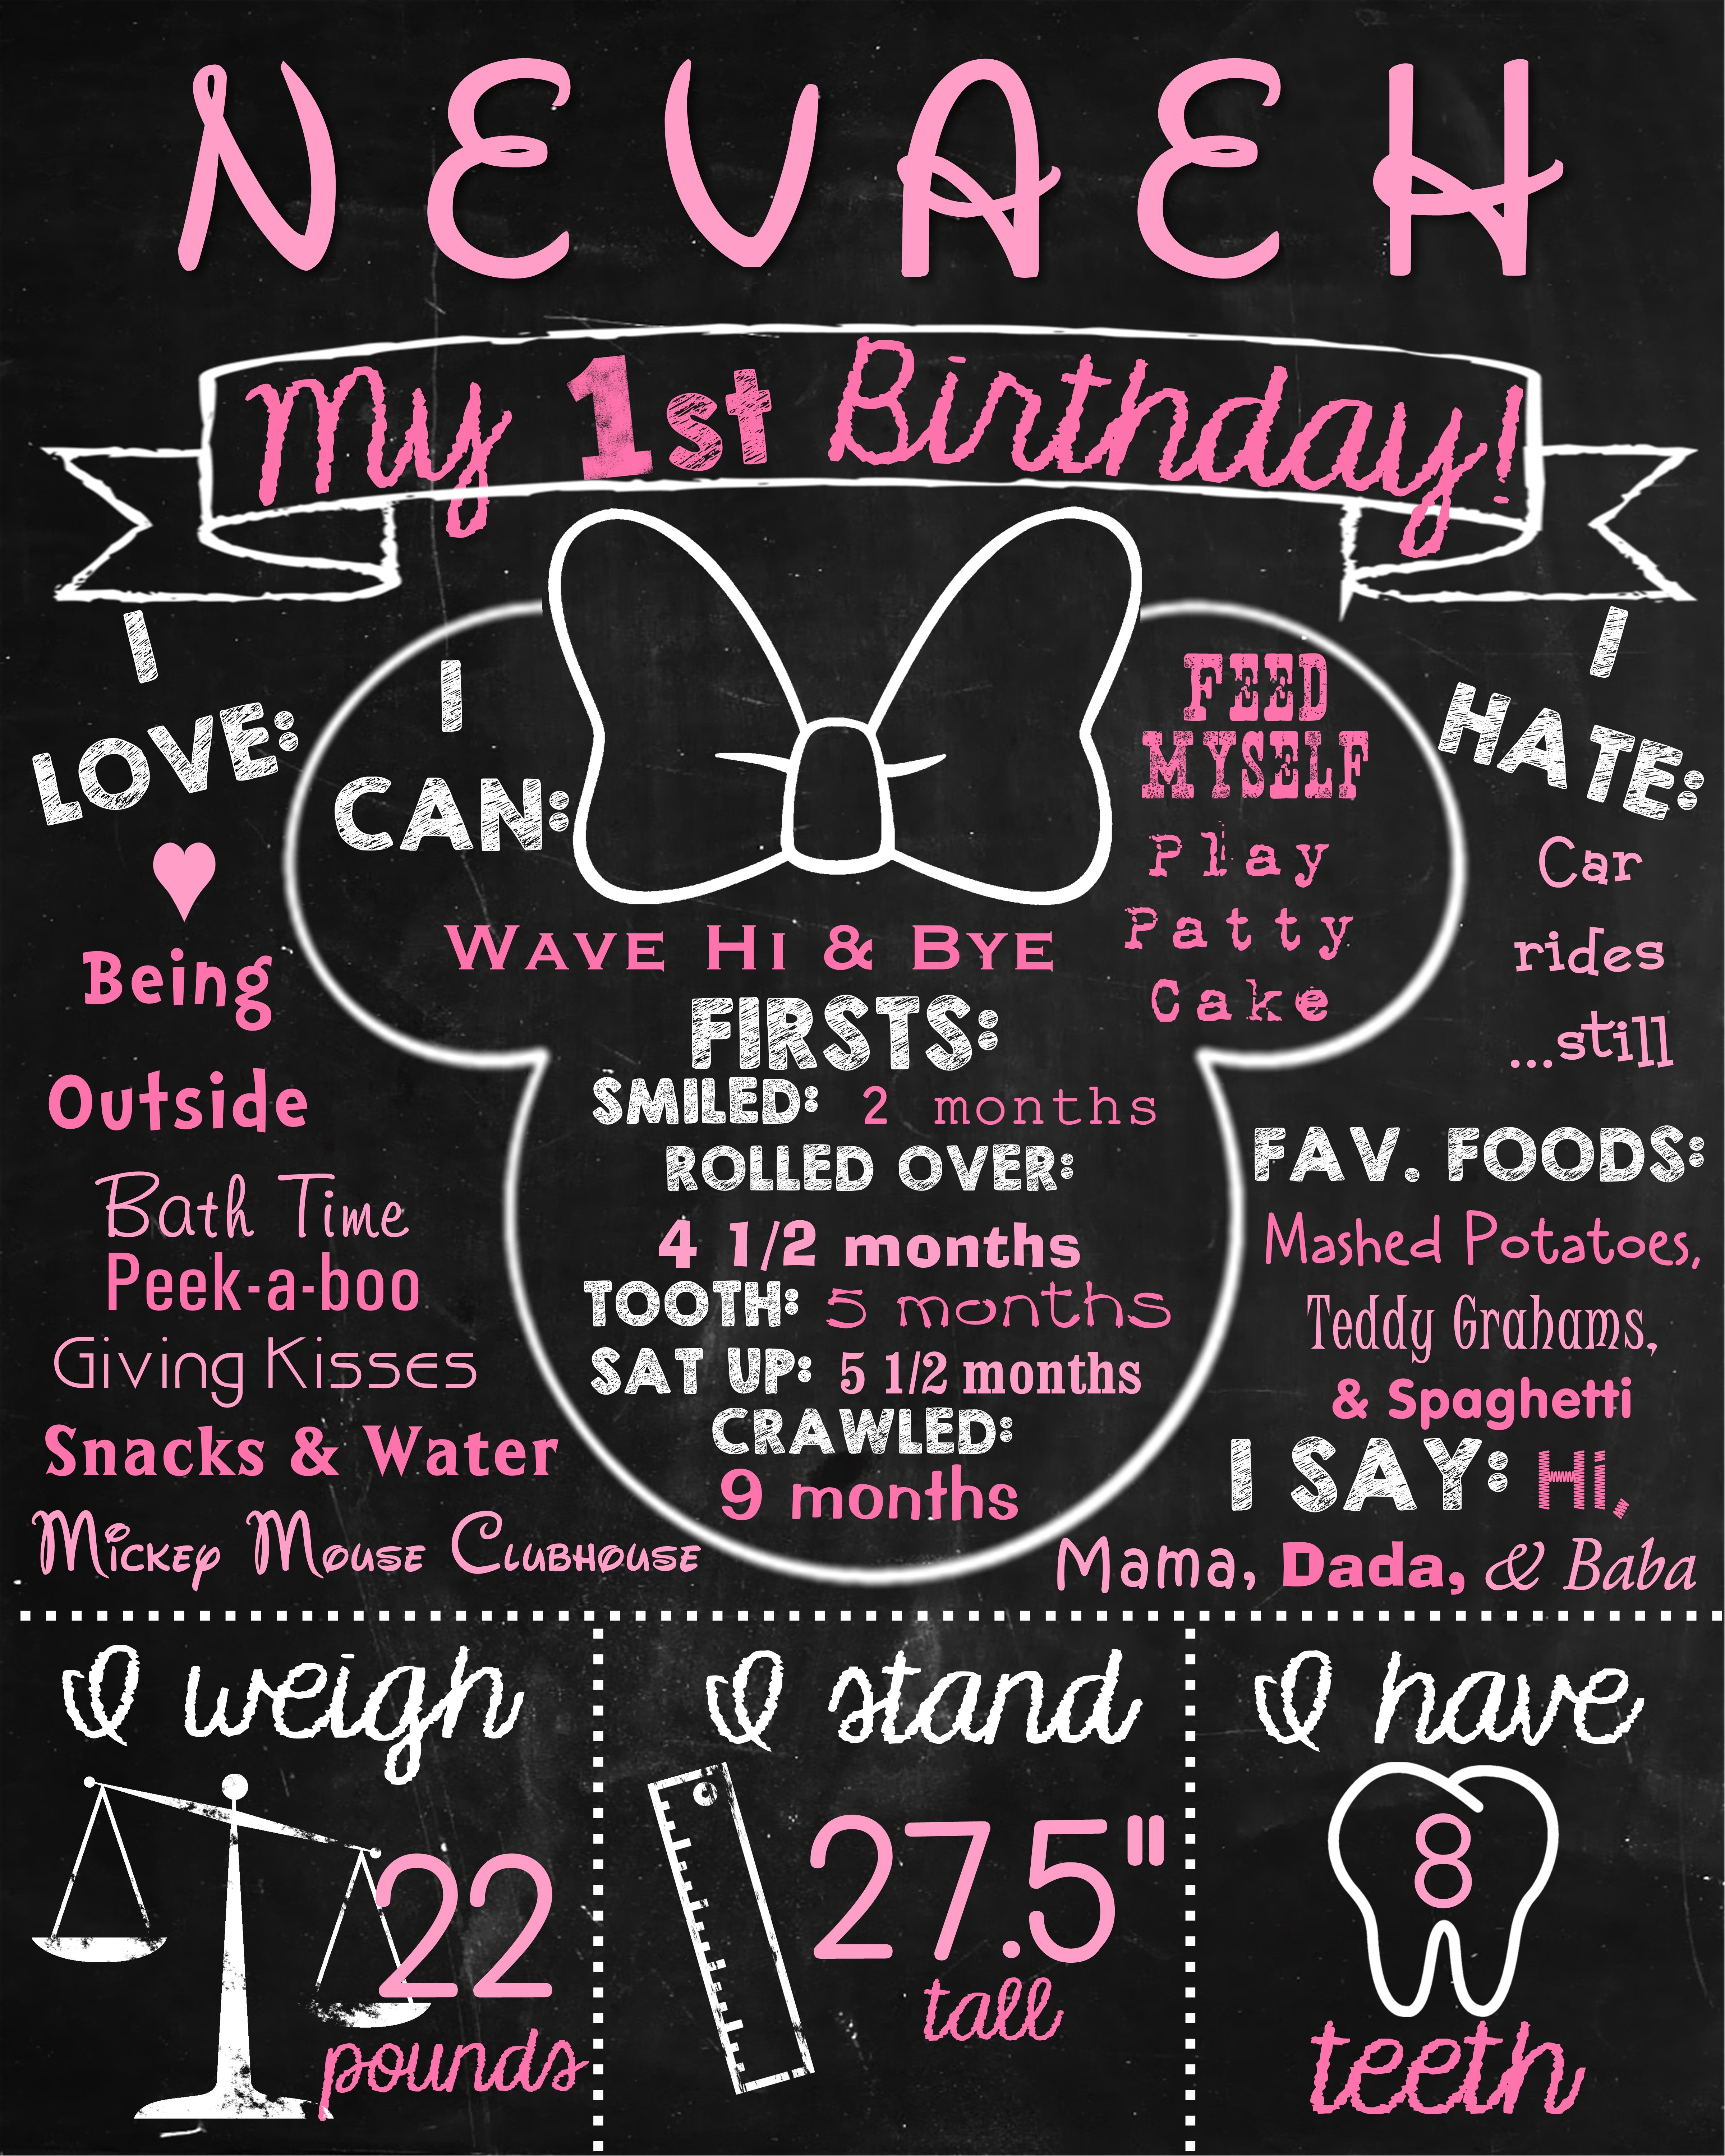 Design a 16x20 poster - 16x20 Minnie Mouse First Birthday Chalkboard Poster Contact Me Via Email At Aswiney01 Yahoo